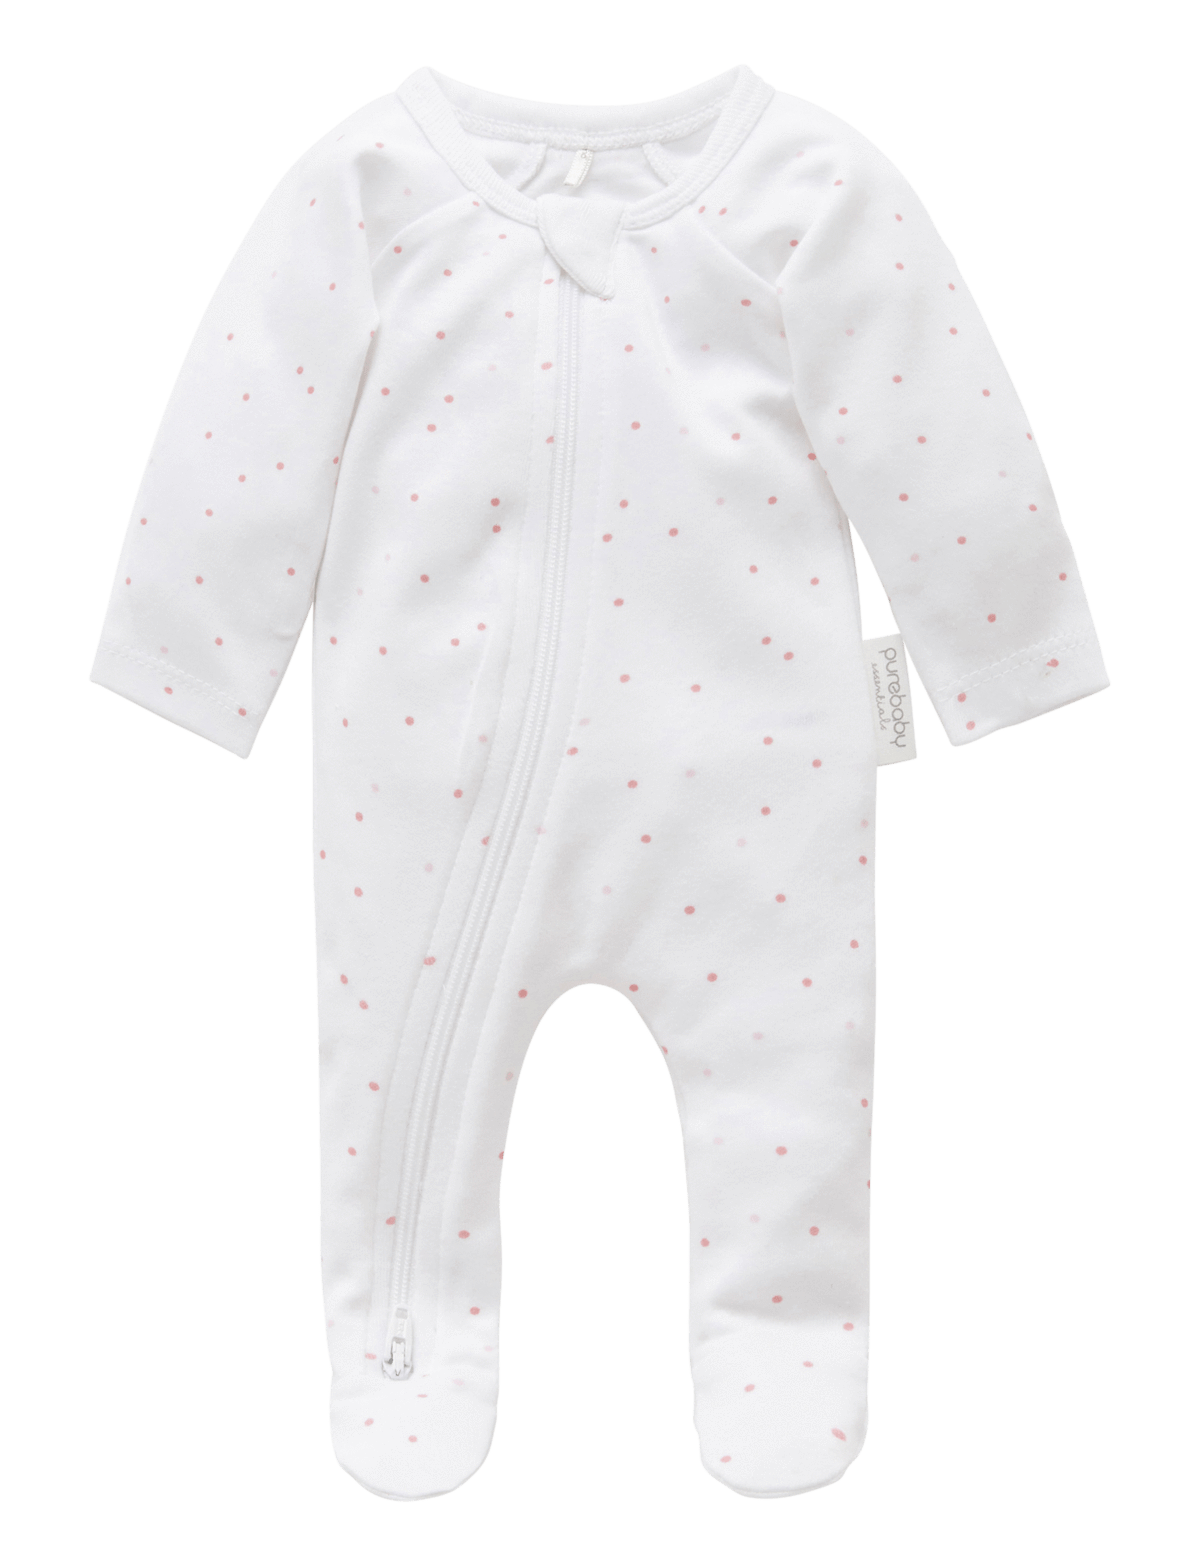 Premie Zip Growsuit - Pale Pink Spot